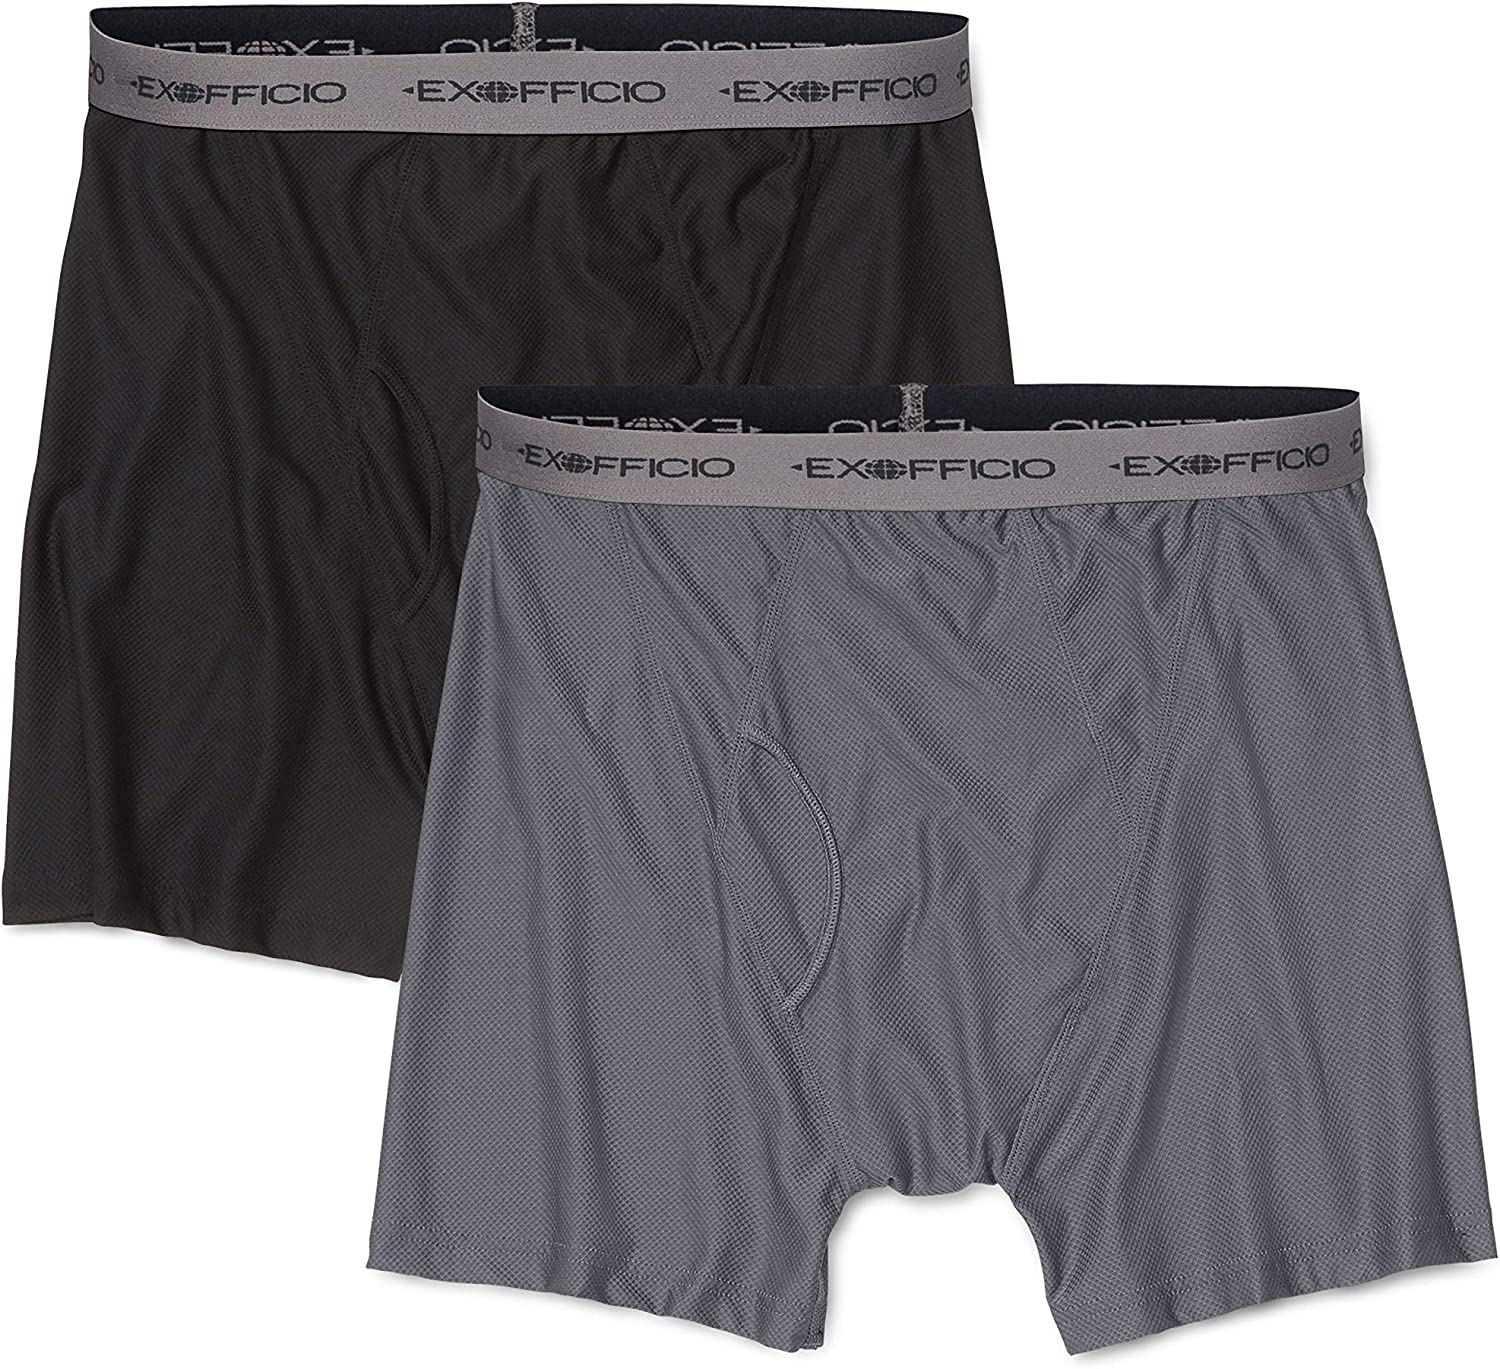 ExOfficio Men's Give-n-go Boxer Brief,Granite/Black,2 Pack - Medium